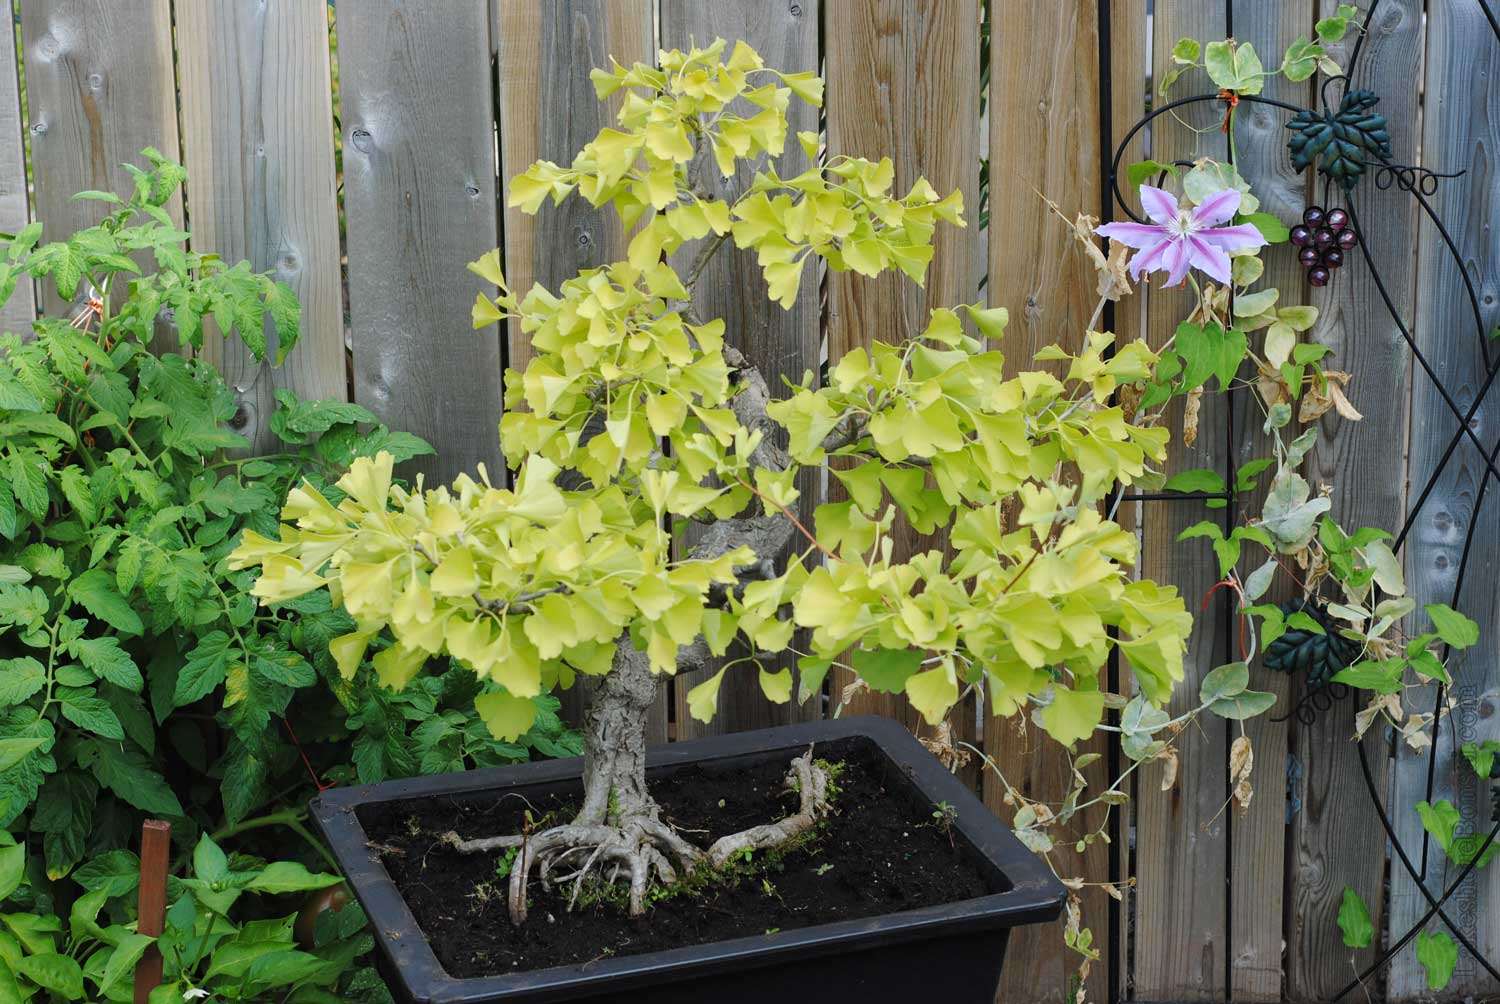 Ginkgo biloba, as purchased. Again, showing obvious signs of stress. You can clearly see the pure garden soil these trees are potted in.